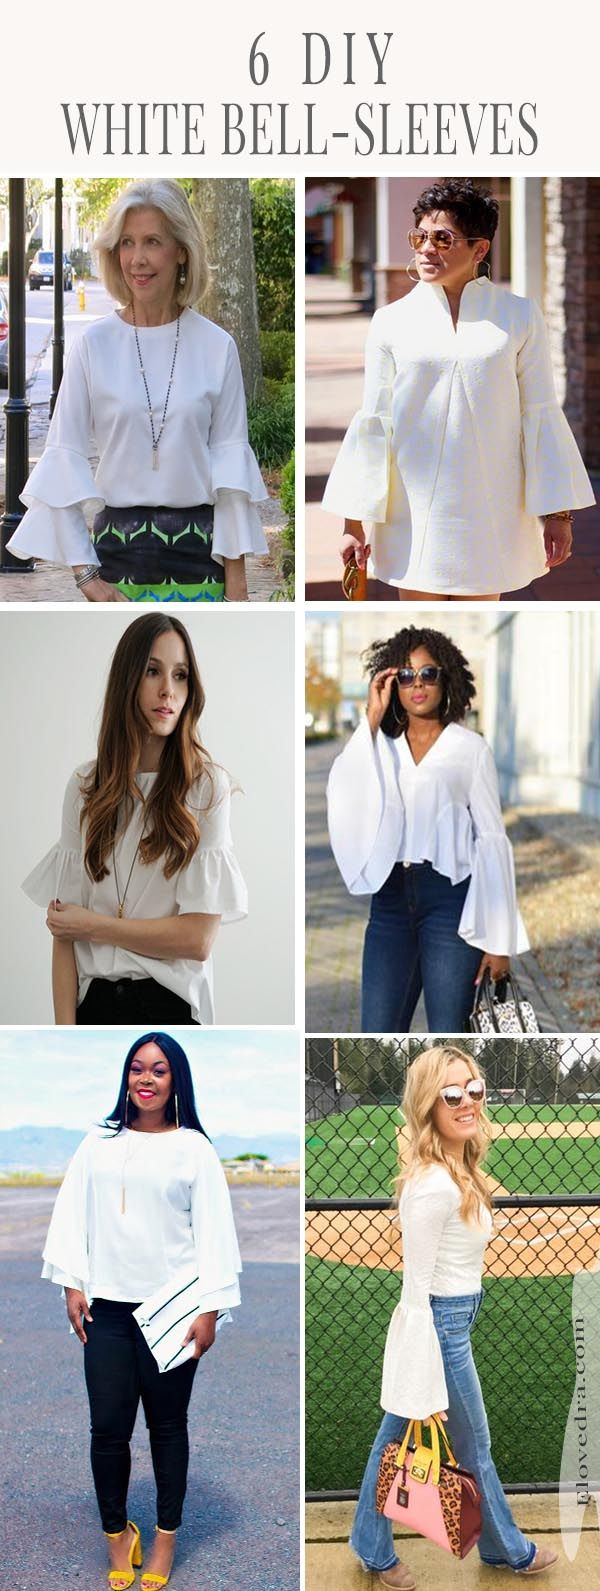 If you're wanting to sew bell-sleeves, get inspired by these bell sleeves sewn by these seamstresses and view sewing patterns used.